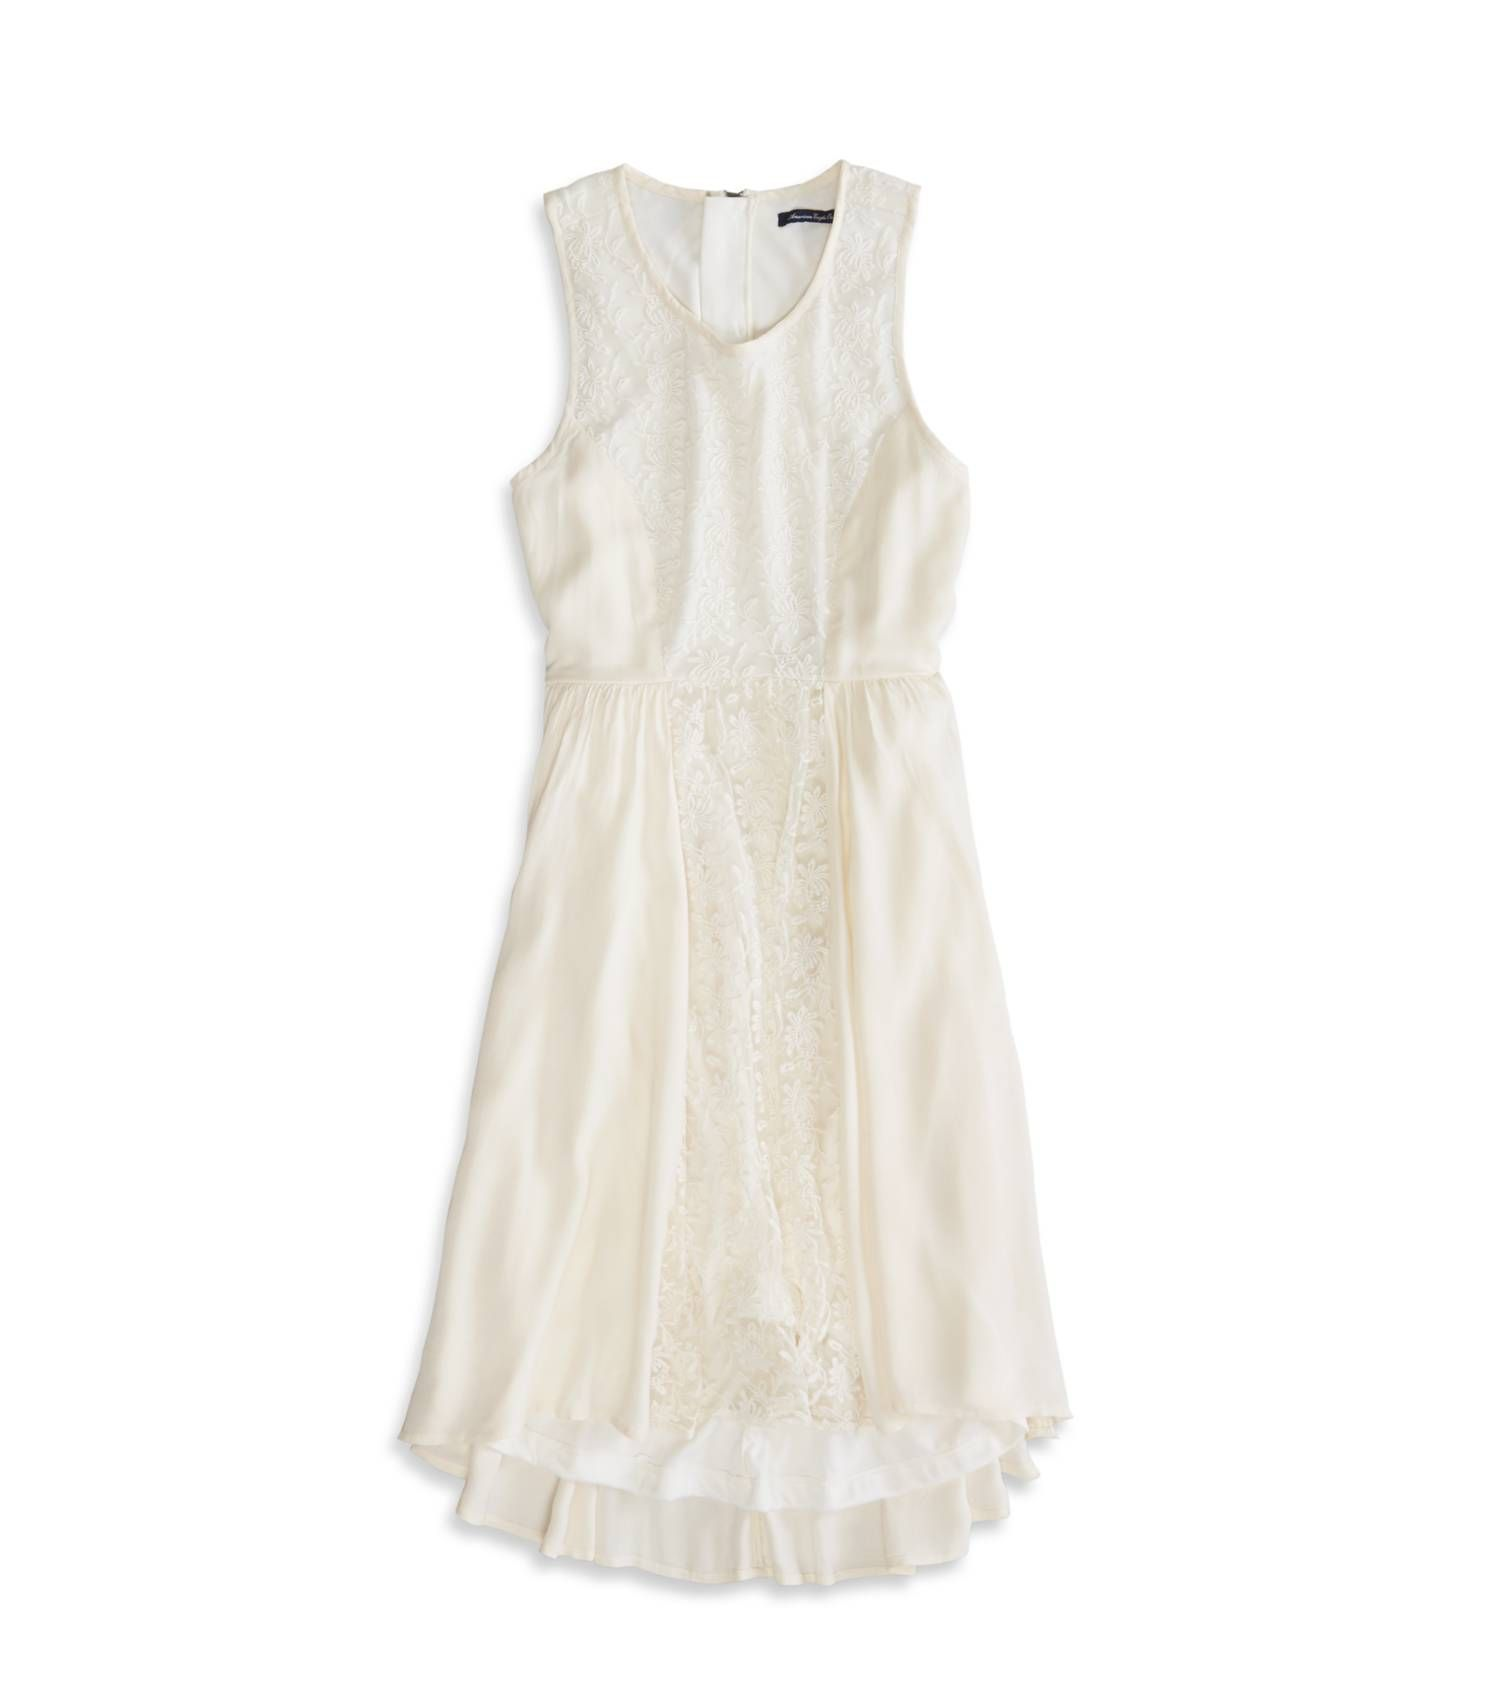 White lace babydoll dress - AE.  Adorable